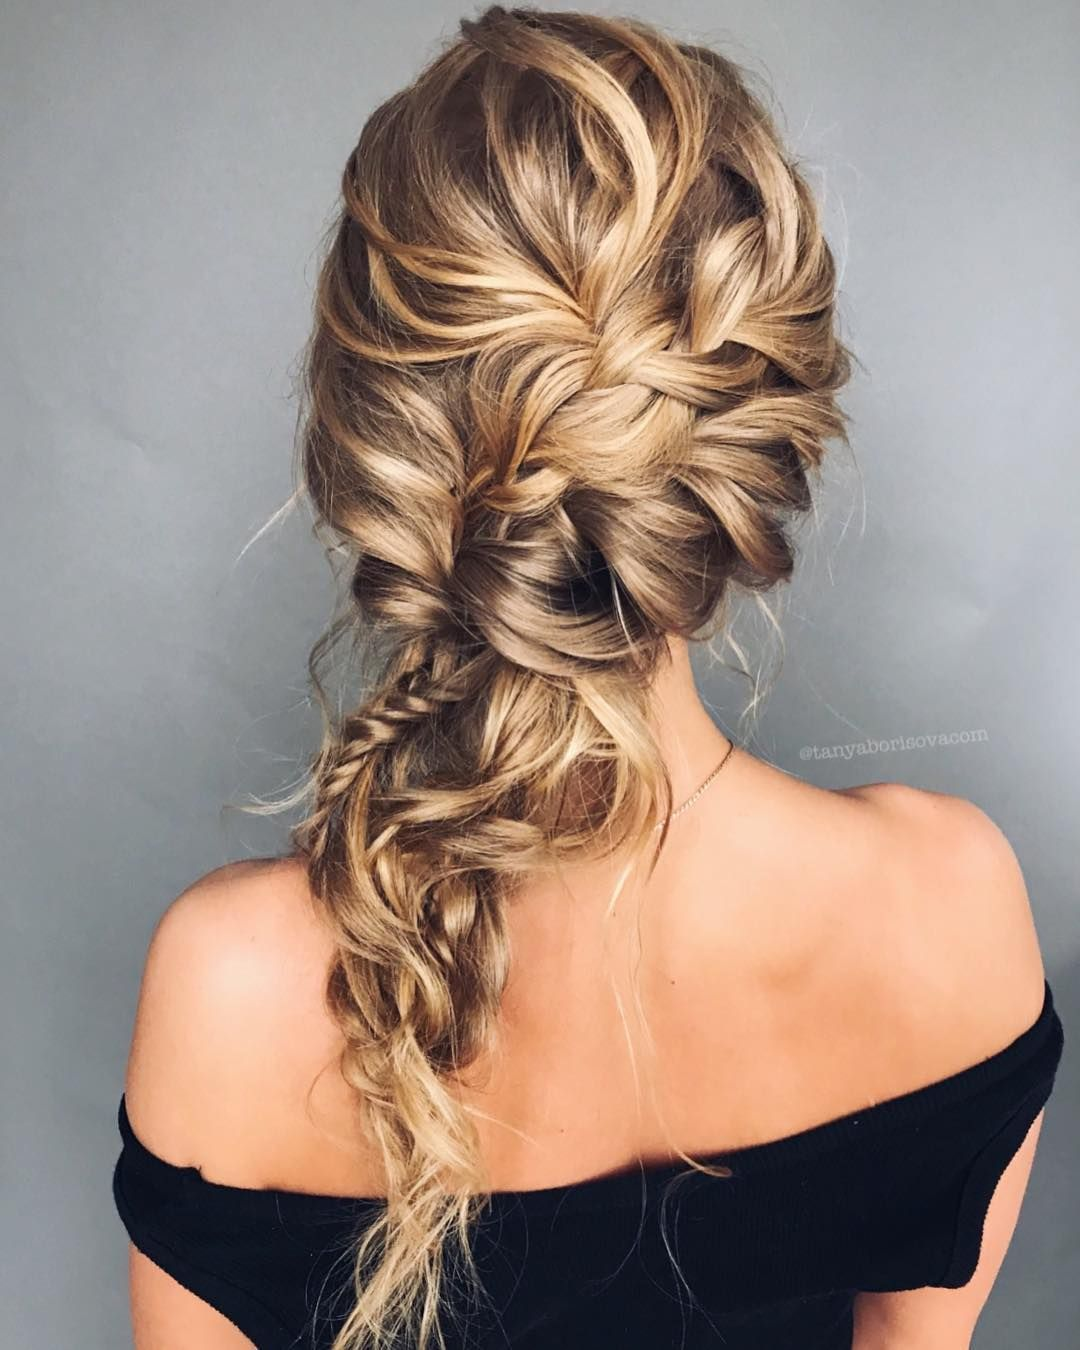 Wedding Braids For Long Hair: Gorgeous Hairstyle Inspiration